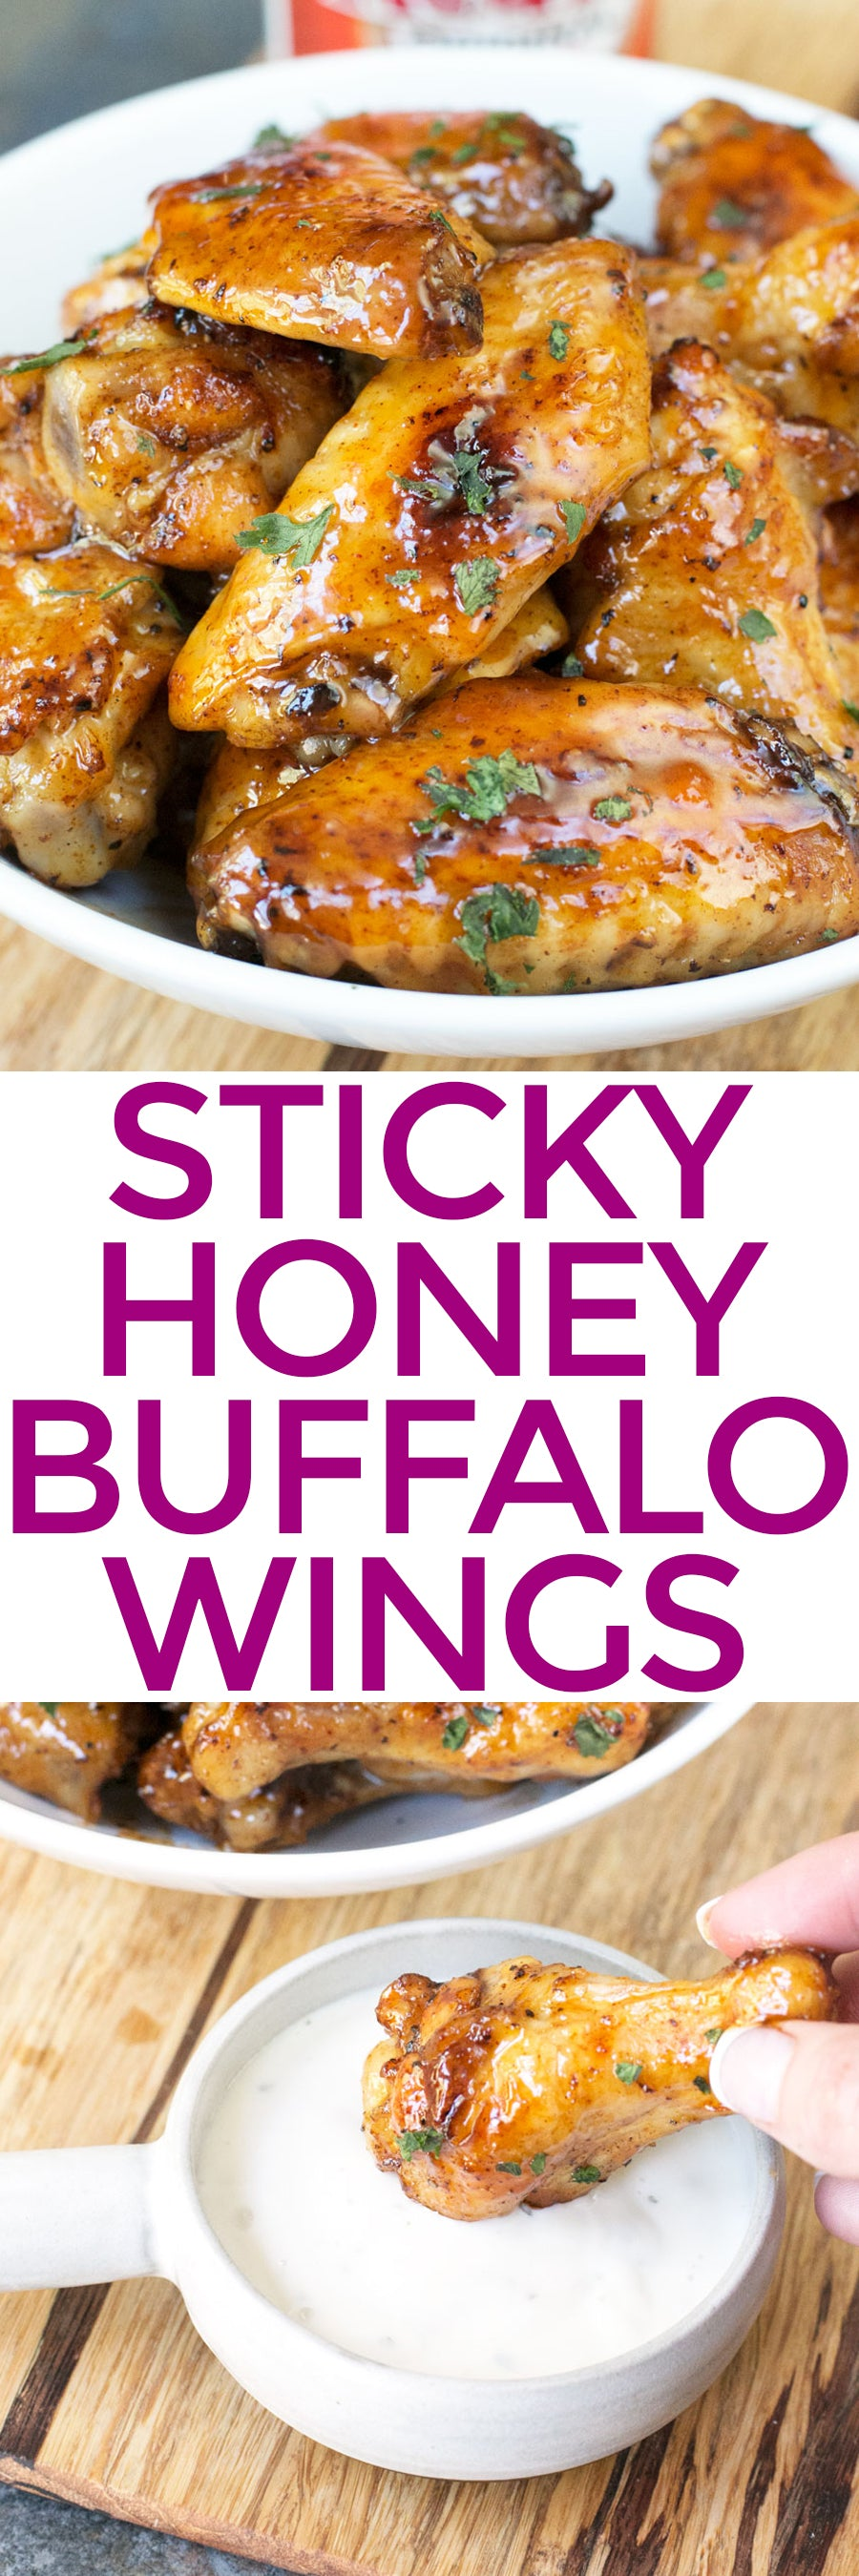 Sticky Honey Buffalo Wings | pigofthemonth.com #tailgating #snacks #homegating